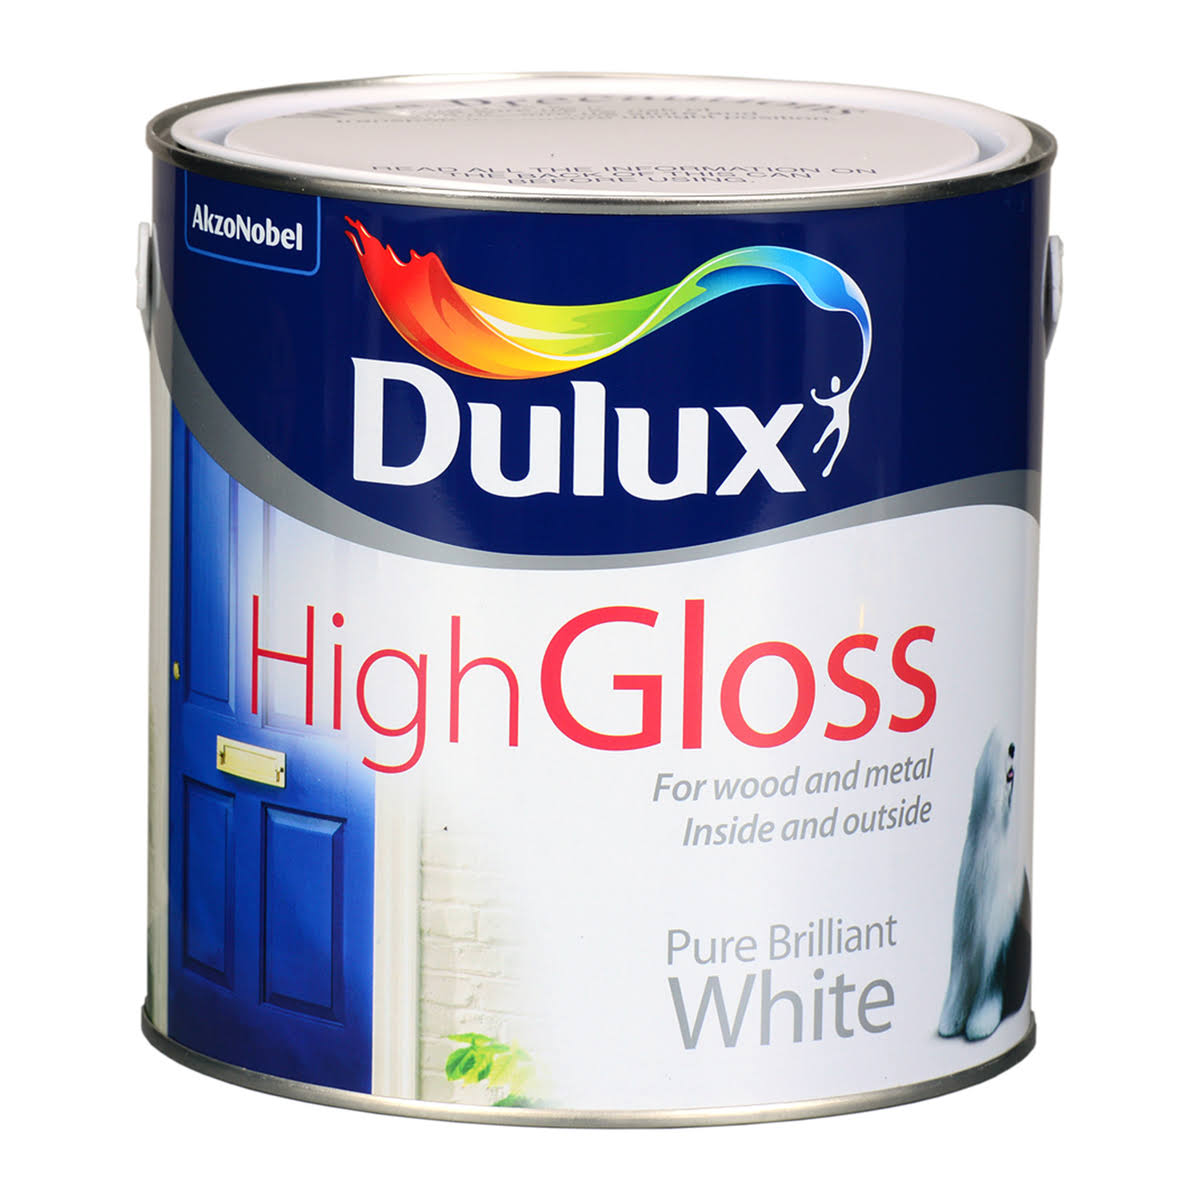 Dulux Interior & Exterior White High Sheen Trim Paint 2500ml Metal Container